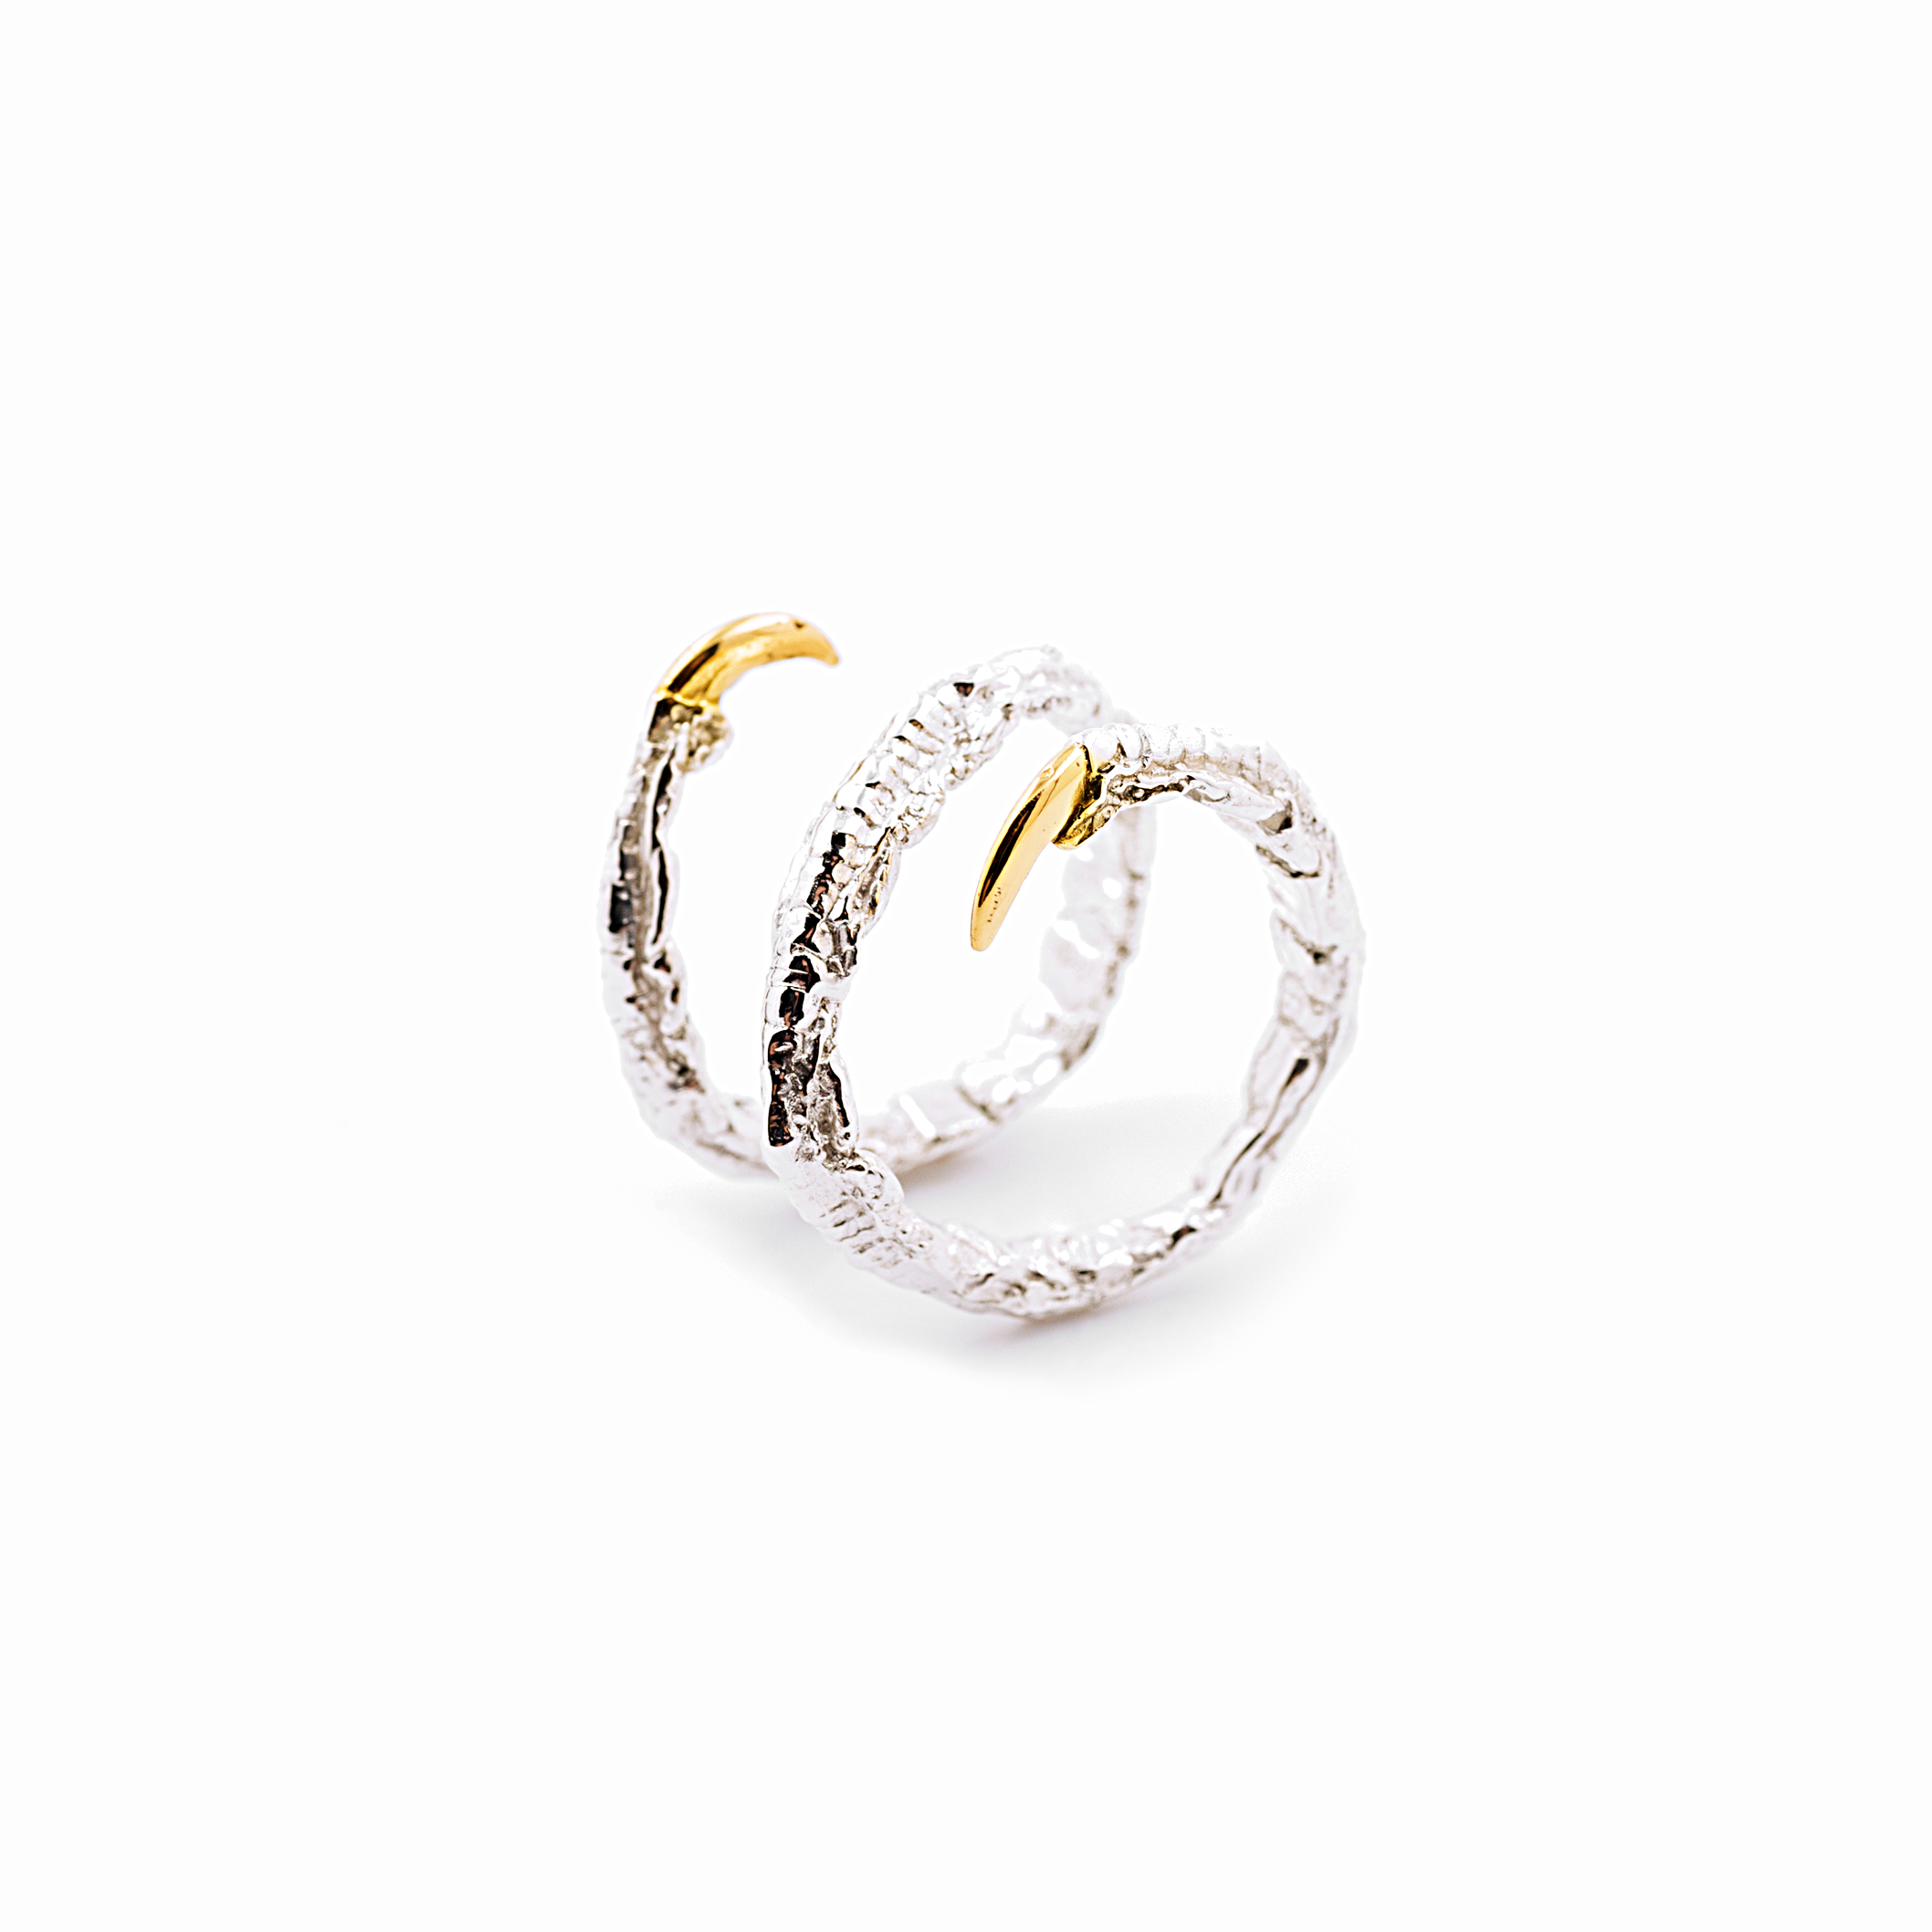 Twist Ring | Sterling silver, gold vermeil.